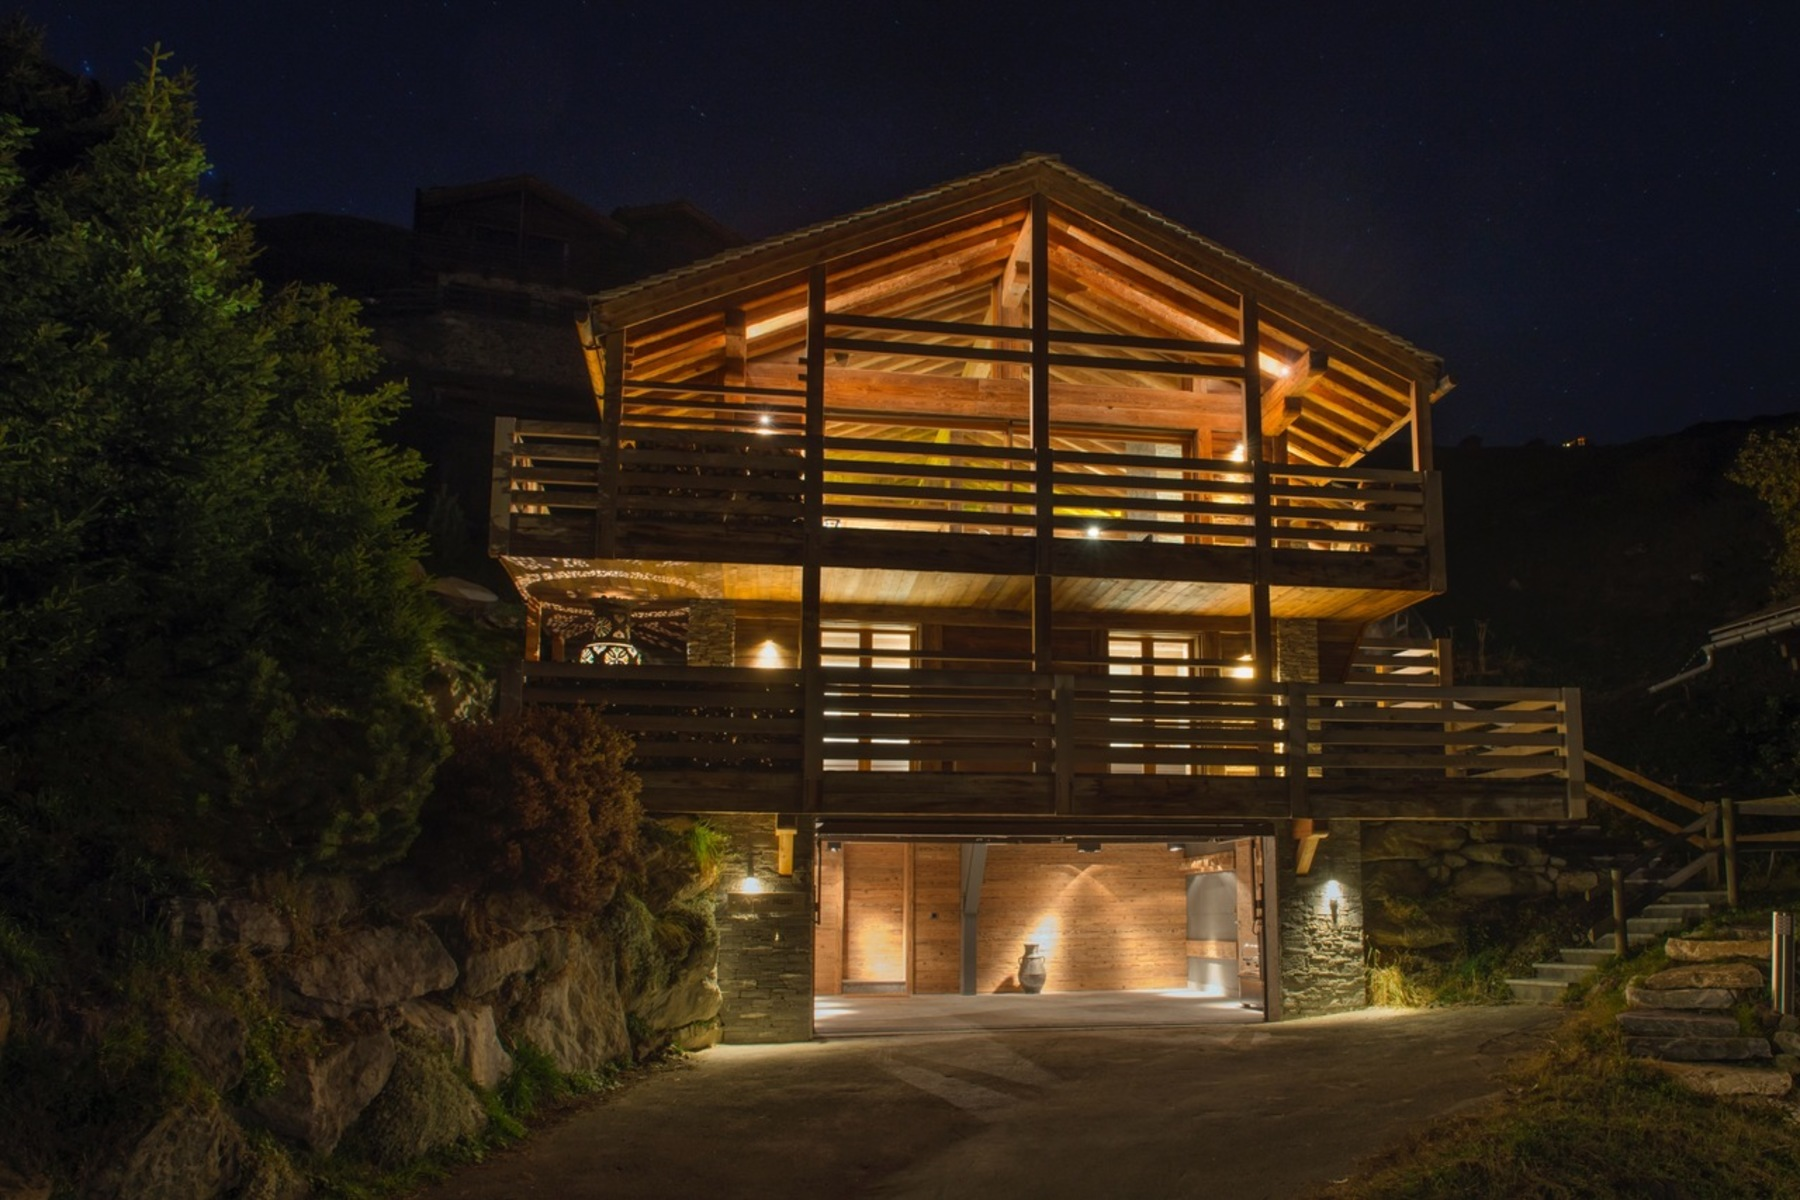 Single Family Home for Sale at Chalet ALPIN ROC Verbier, Valais 1936 Switzerland